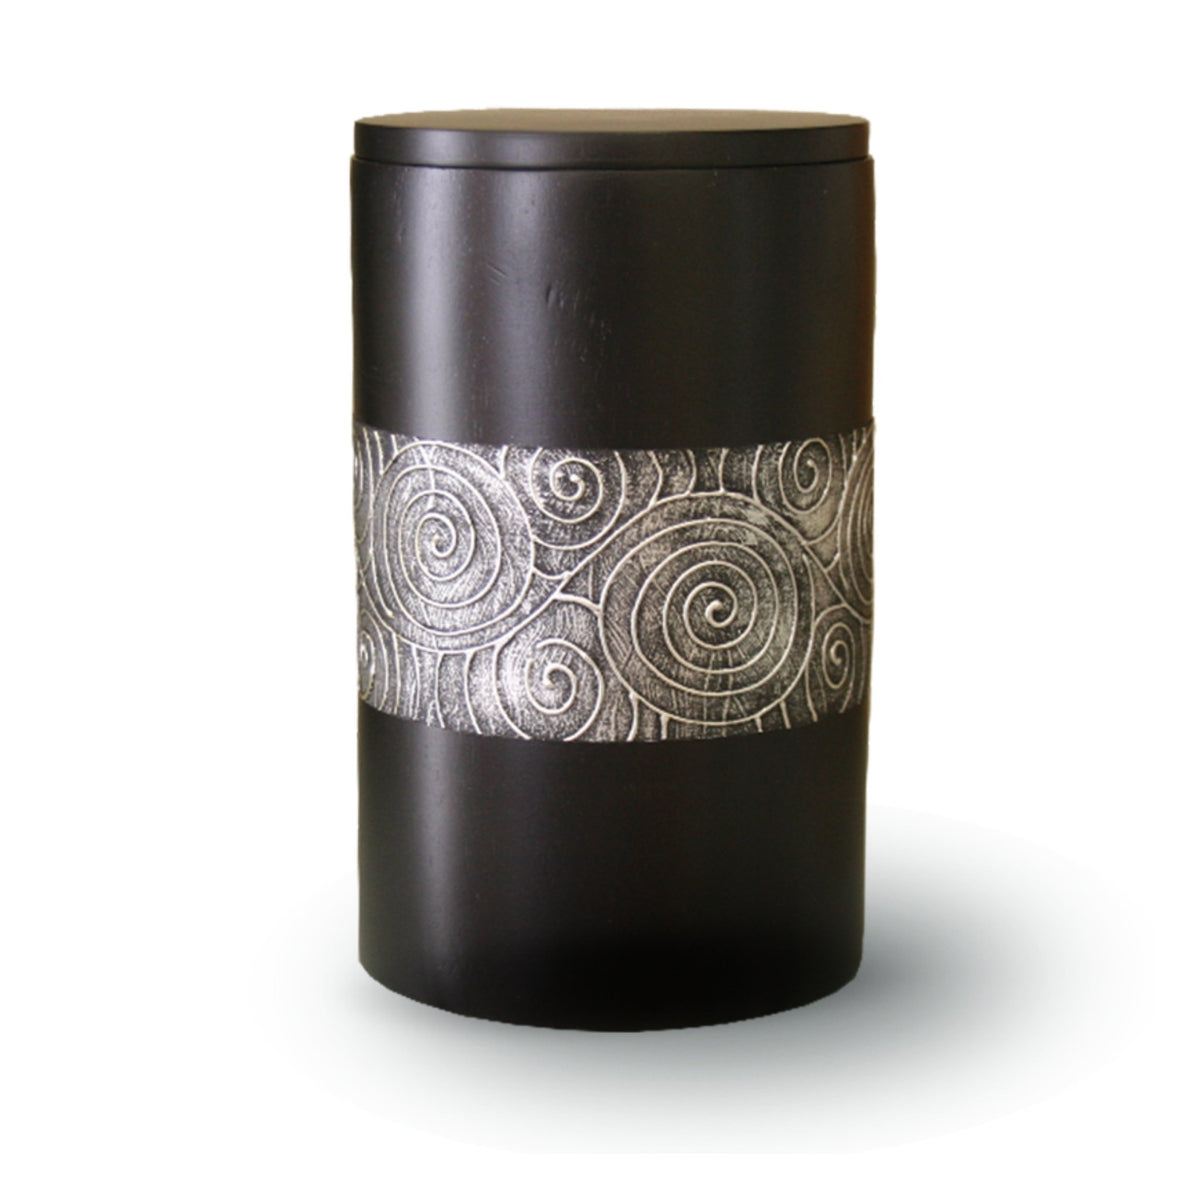 Abbeyhill Moon Adult Cremation Ashes Urn